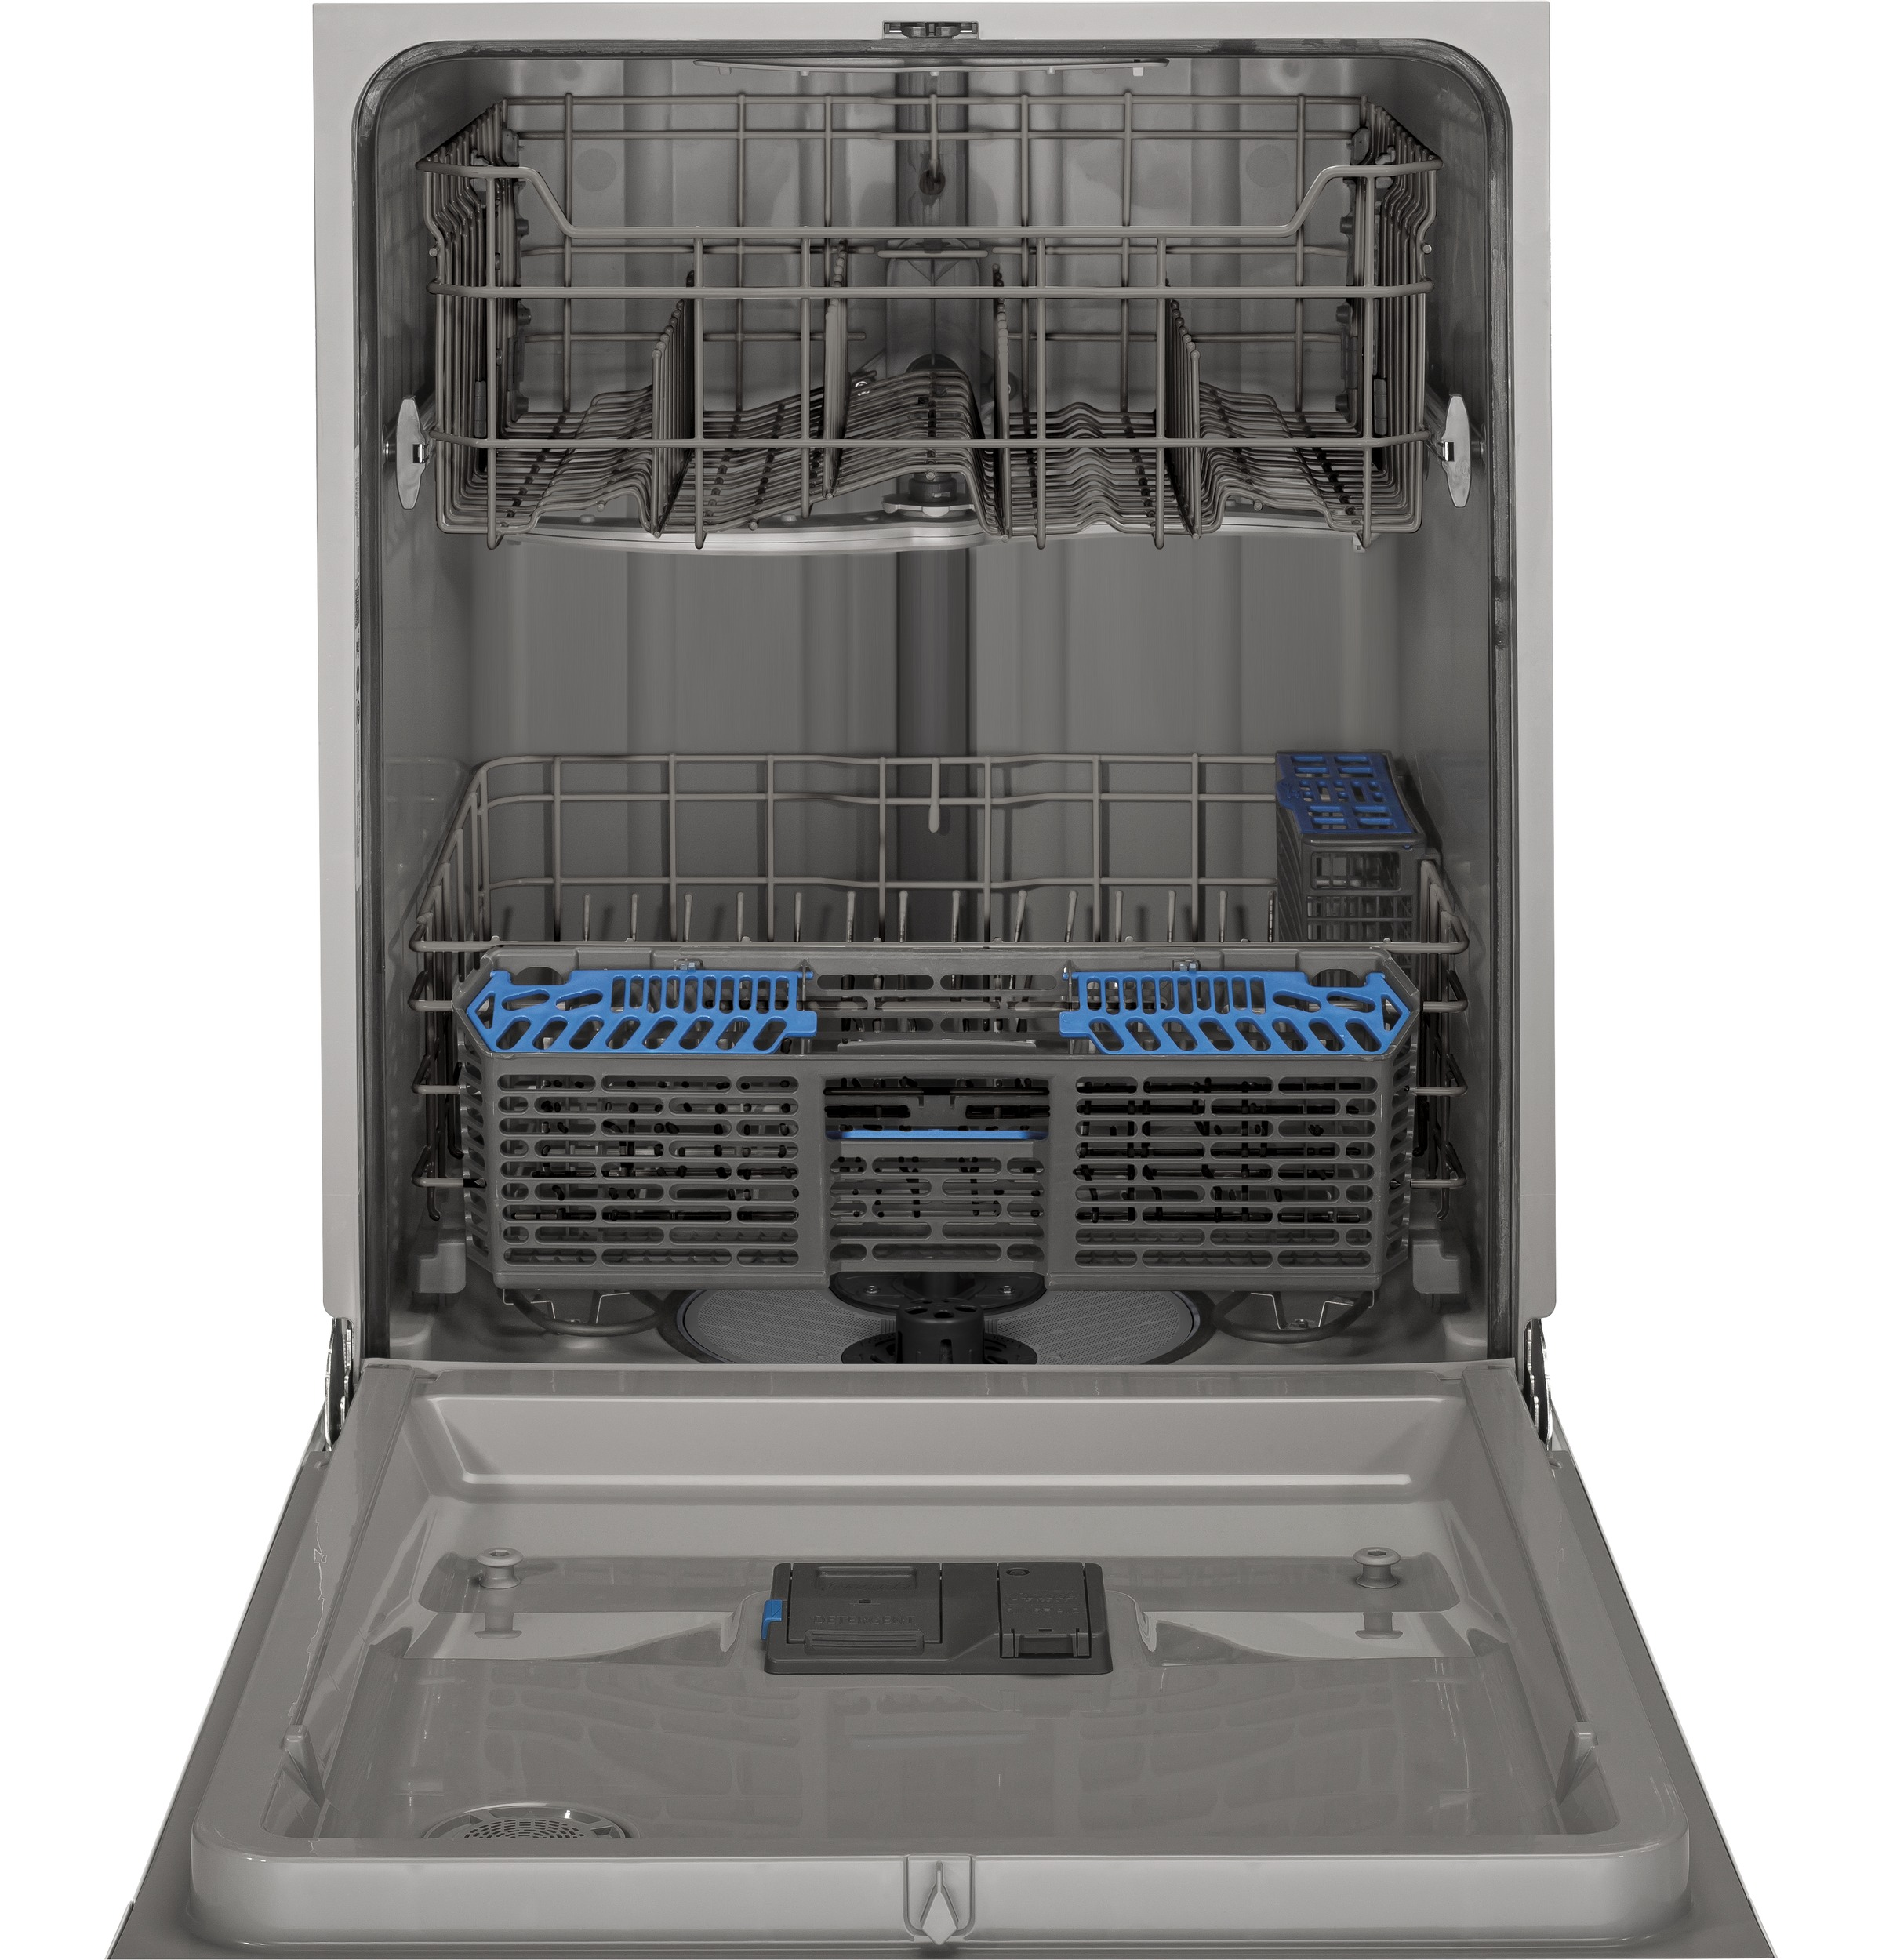 Ge Appliance Customer Service 800 Gear Dishwasher With Front Controls Gdf510pgdww Ge Appliances